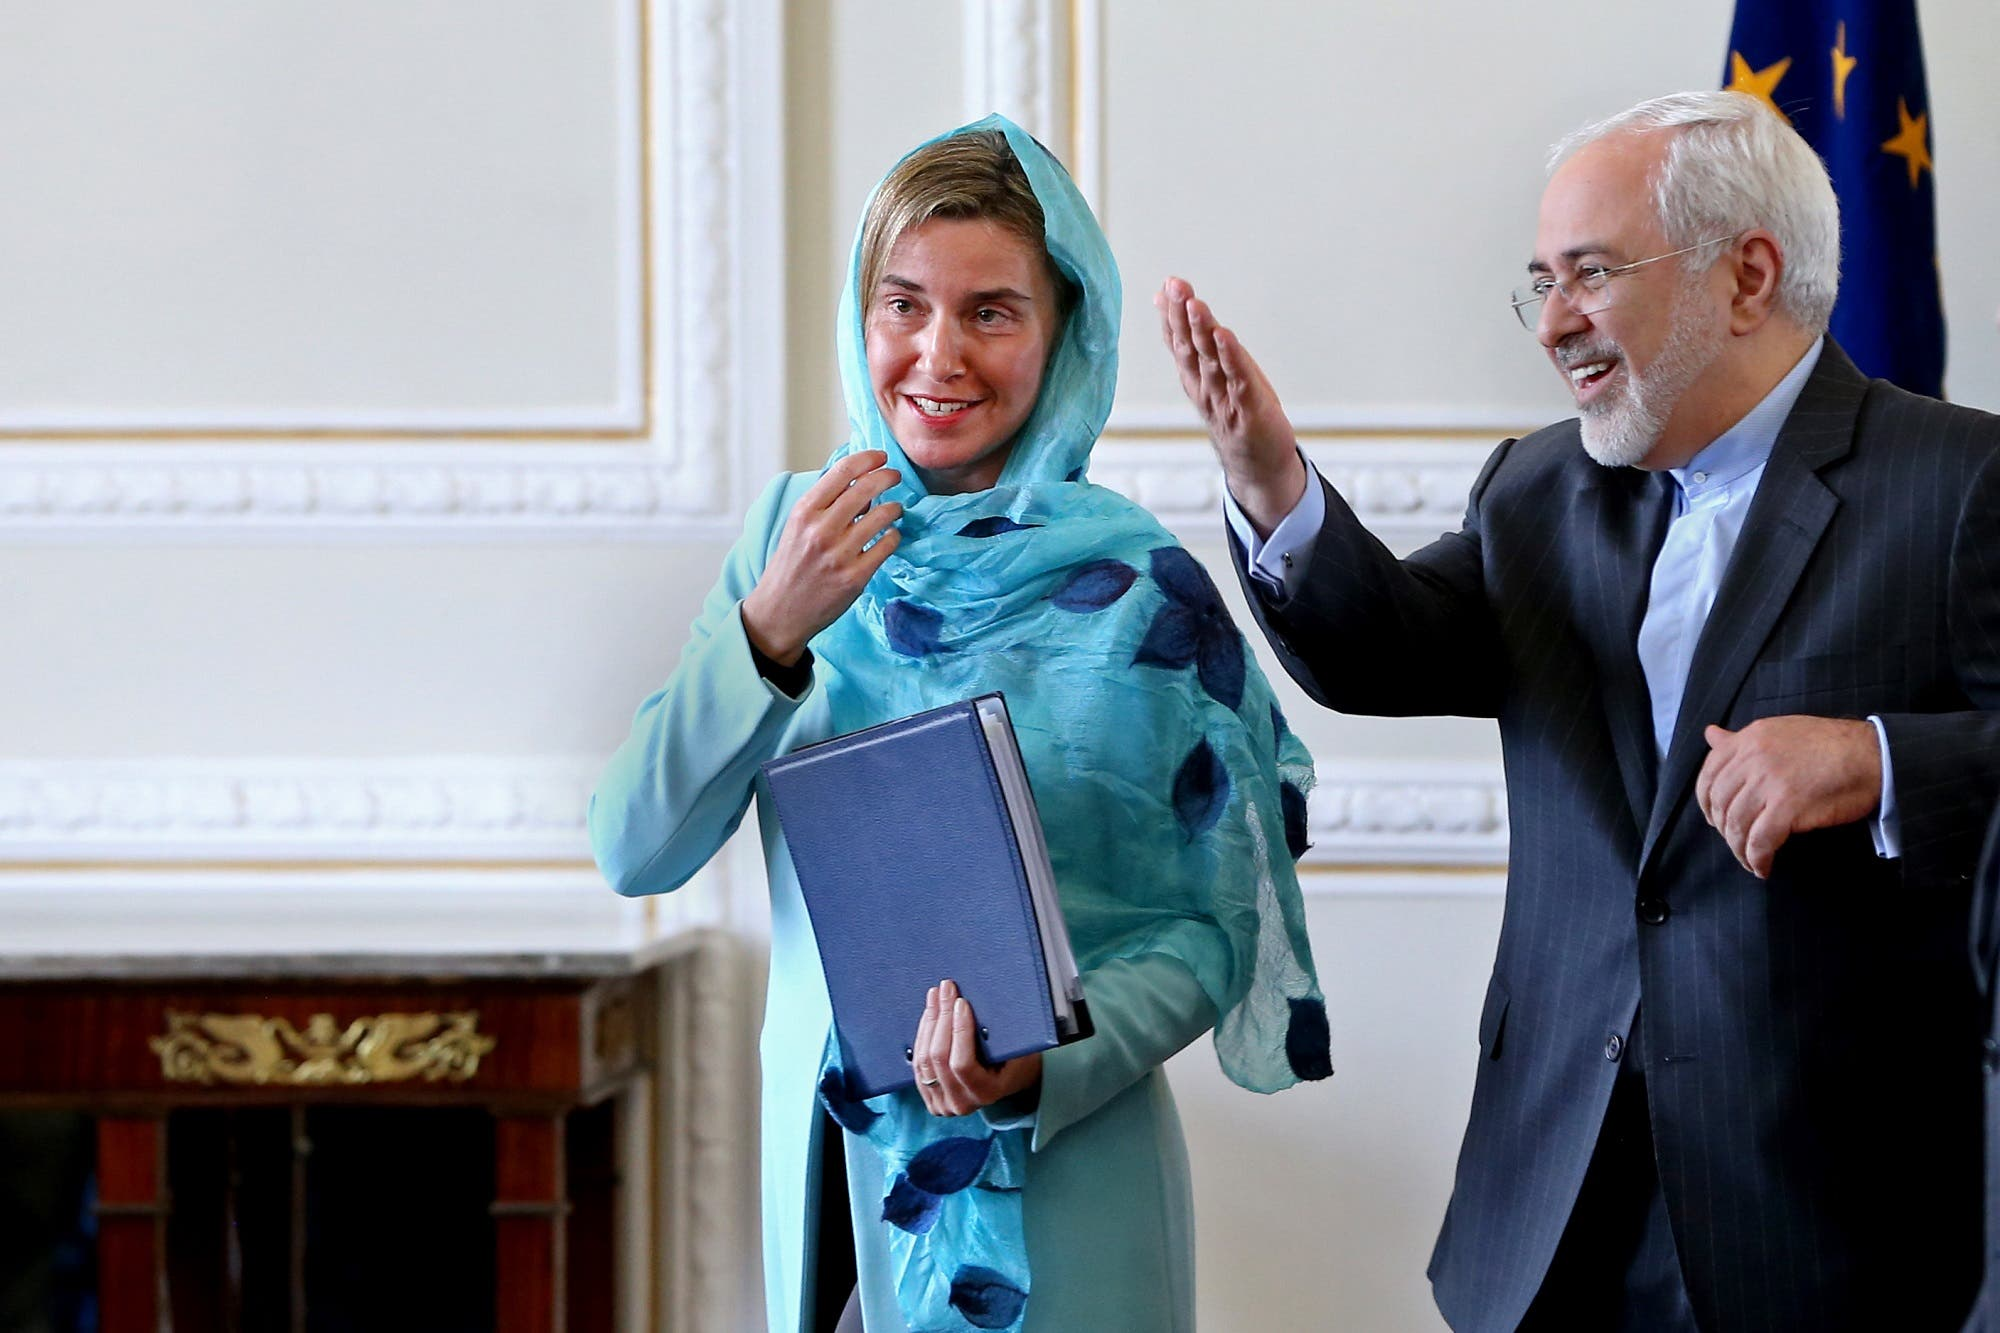 Foreign Minister Javad Zarif, right, gestures to EU foreign policy chief Federica Mogherini at the end of their press conference in Tehran, Iran, April 16, 2016. (AP)